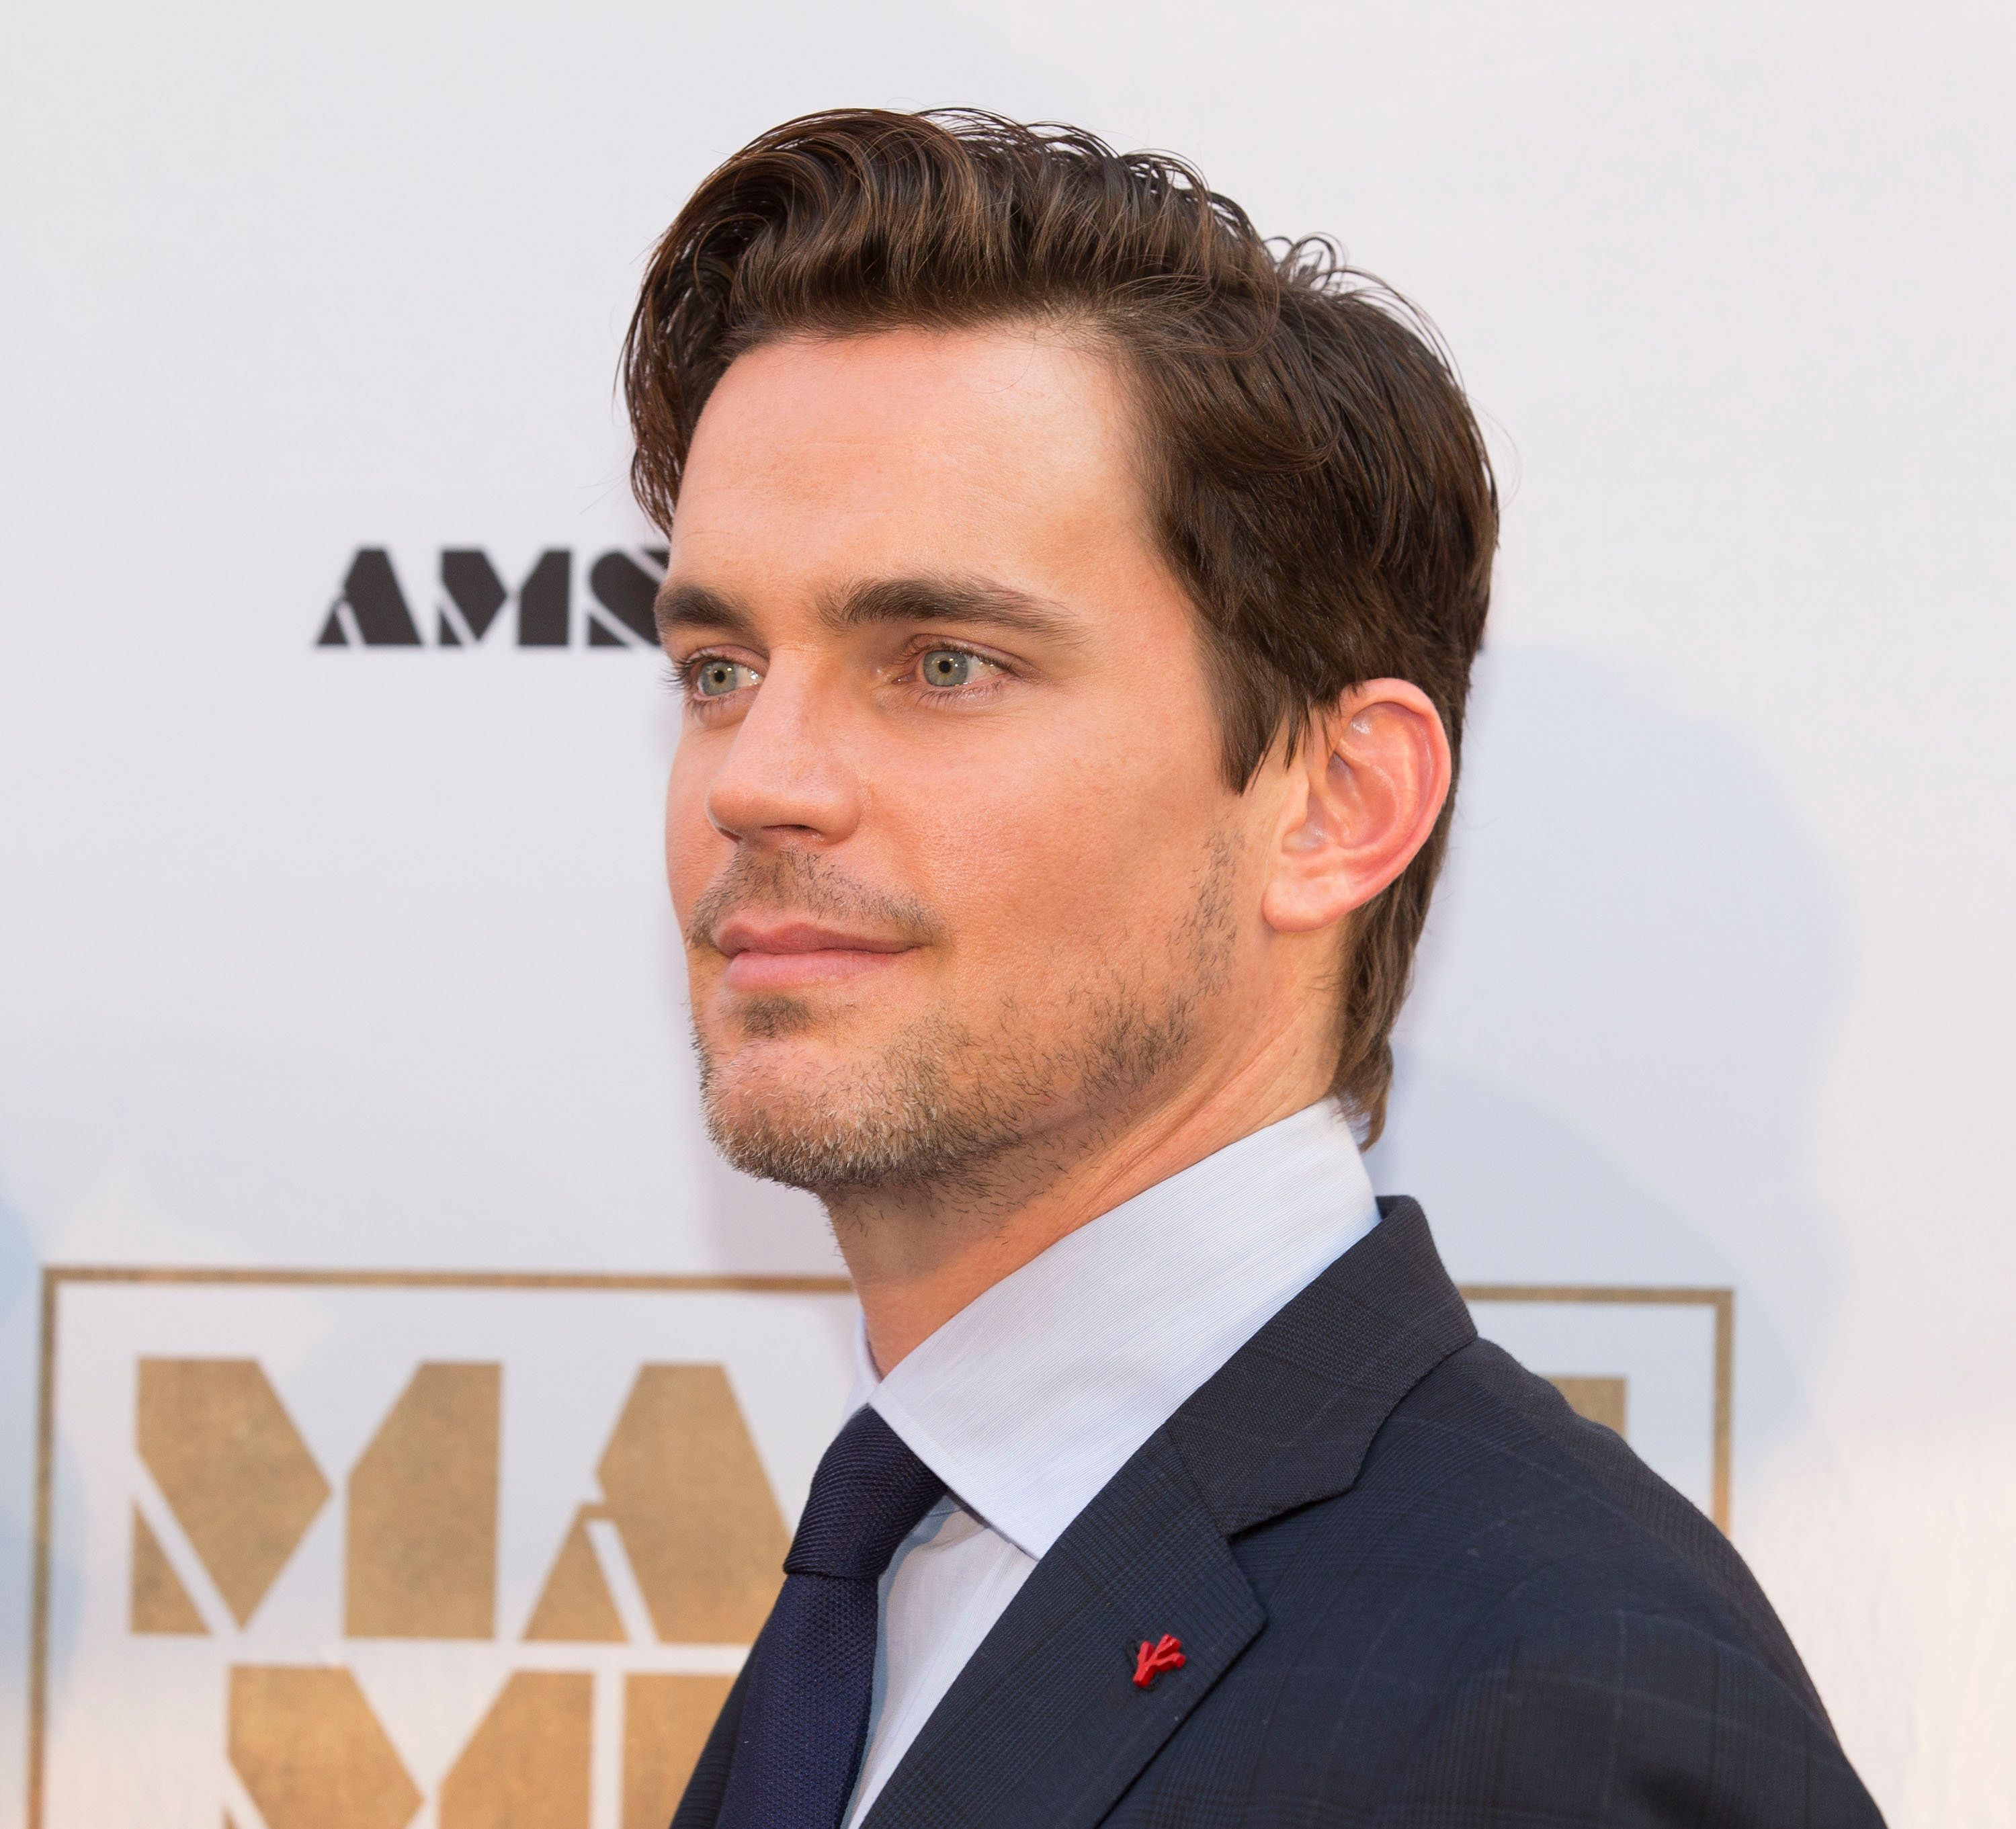 AMSTERDAM, NETHERLANDS - JULY 1: Matt Bomer attends the Amsterdam premiere of 'Magic Mike XXL' on July 1, 2015 in Amsterdam, Netherlands.  (Photo by Michel Porro/Getty Images)